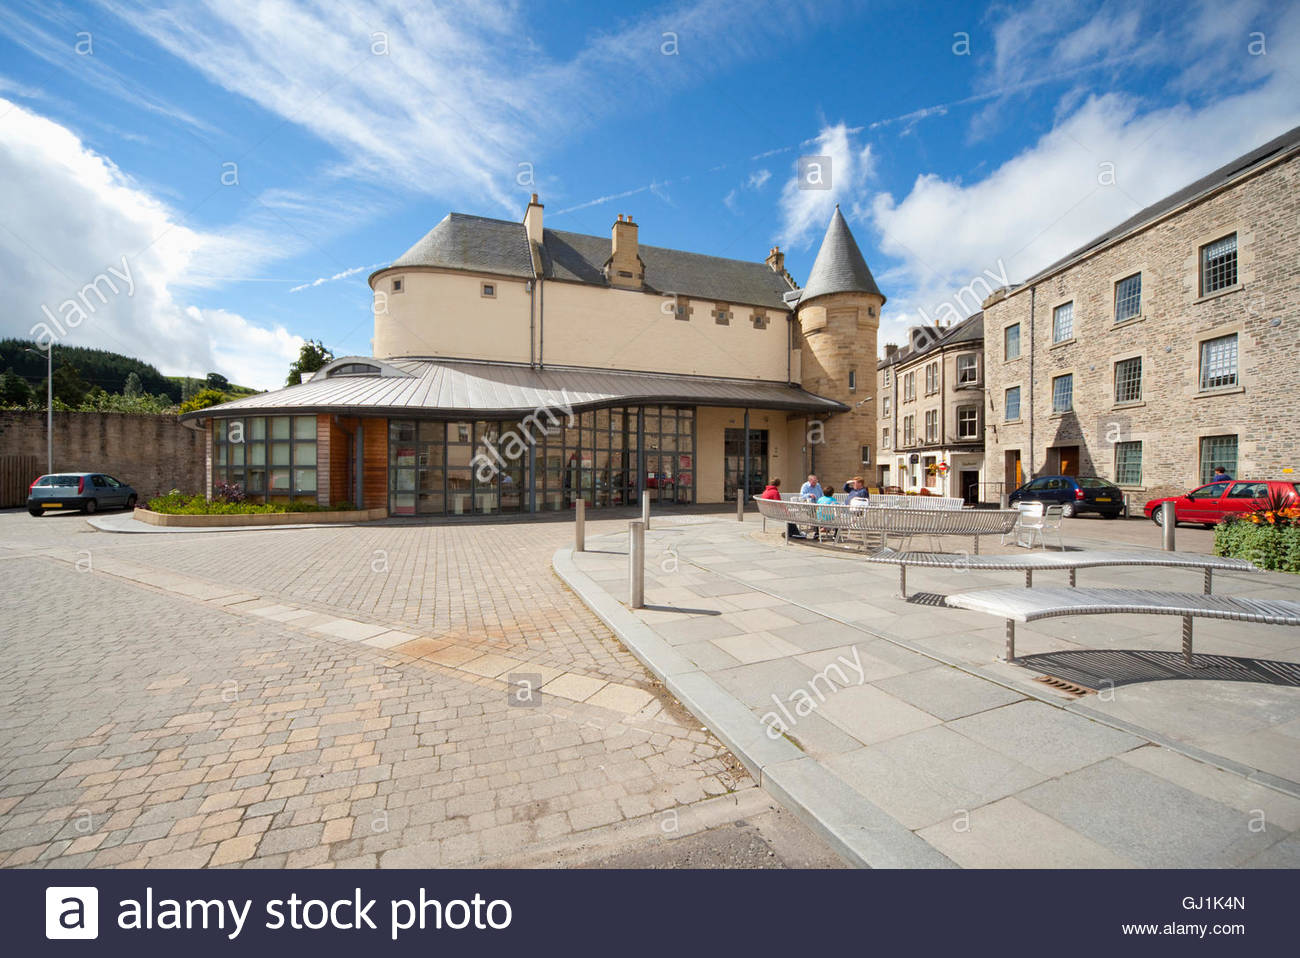 The Heritage Hub, The Scottish Borders Archive and Local History Centre, Hawick, Scottish Borders, Scotland. - Stock Image